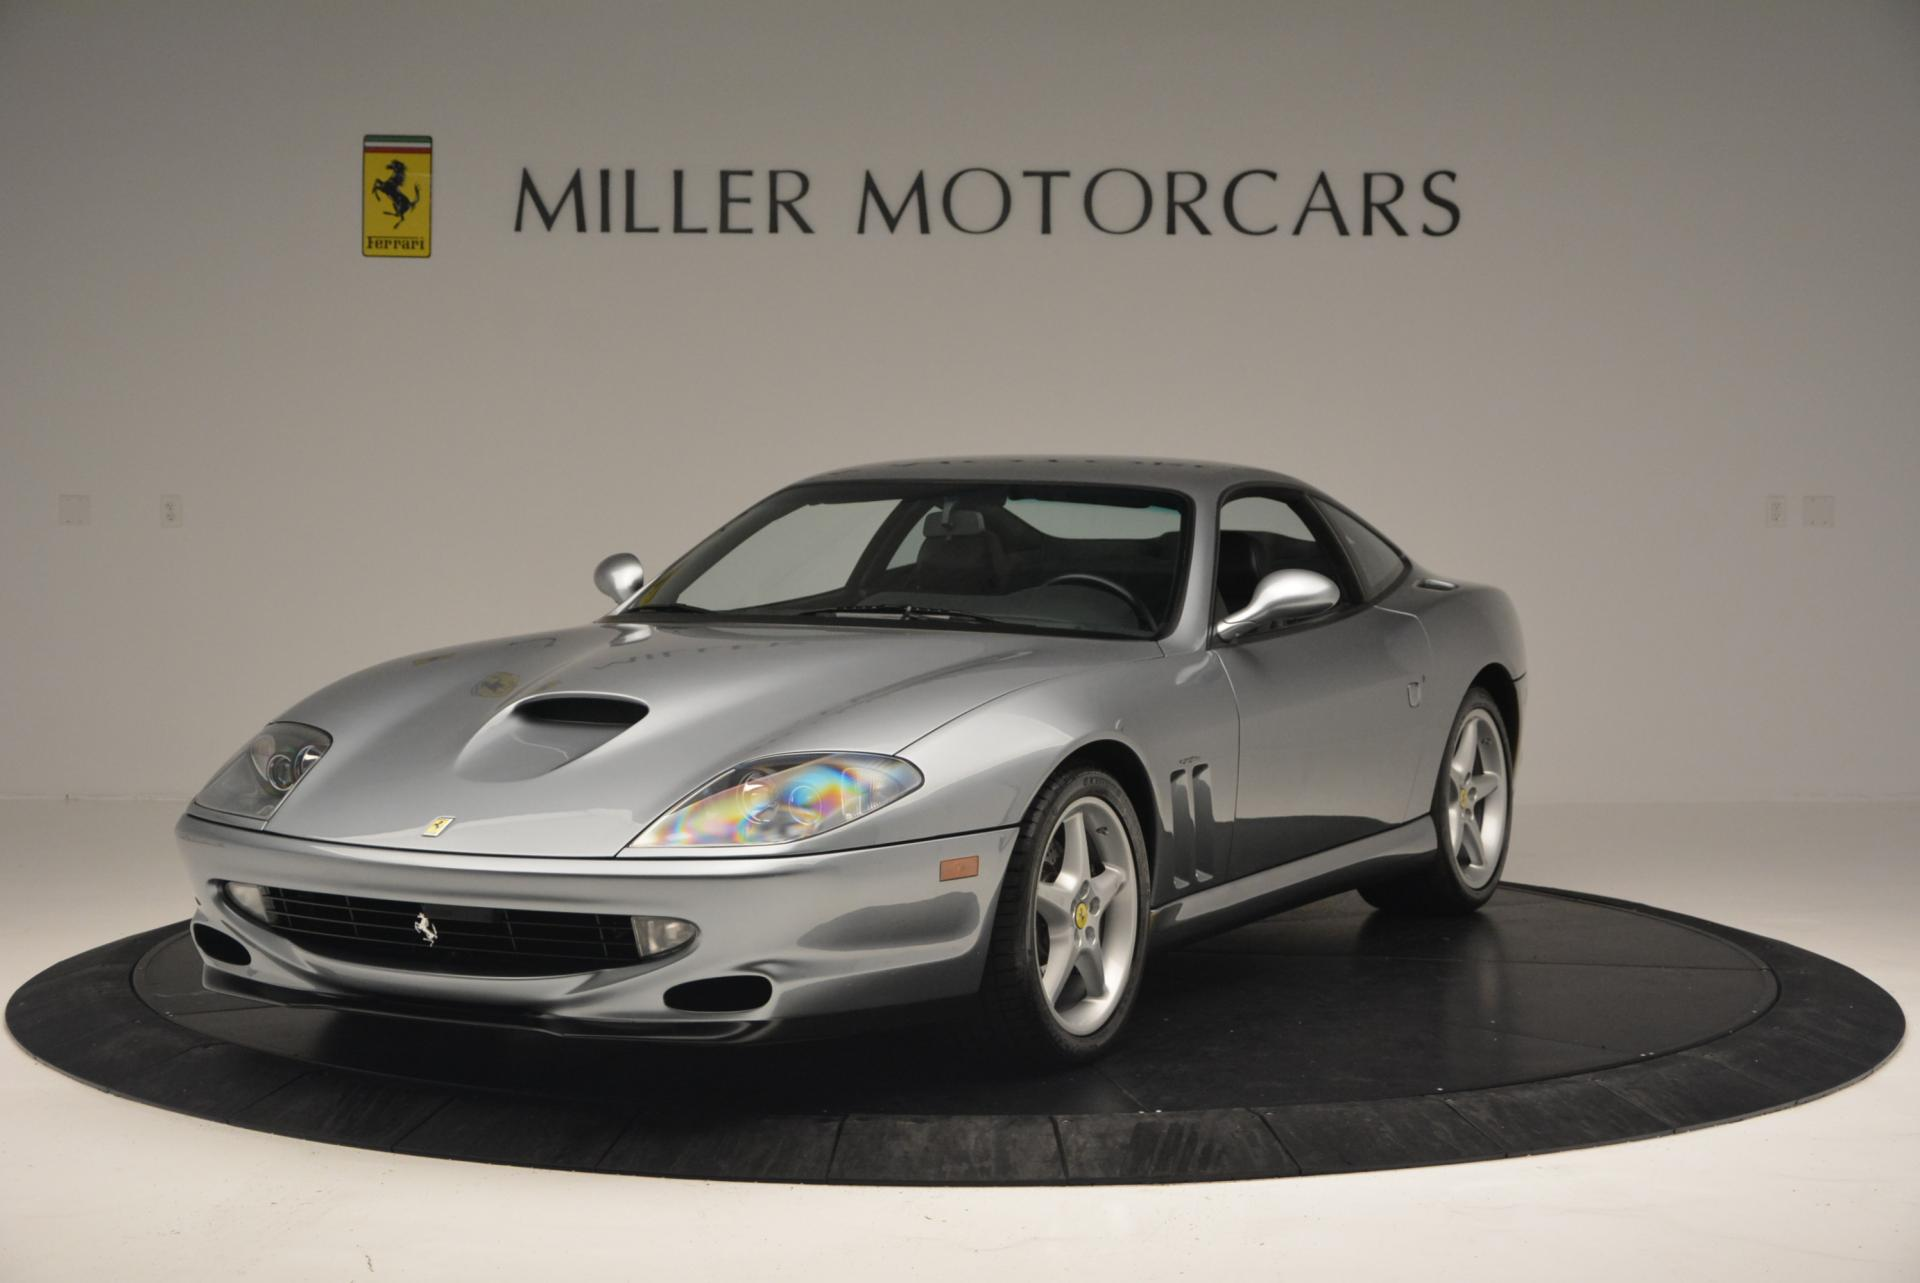 Used 1997 Ferrari 550 Maranello for sale Sold at Pagani of Greenwich in Greenwich CT 06830 1